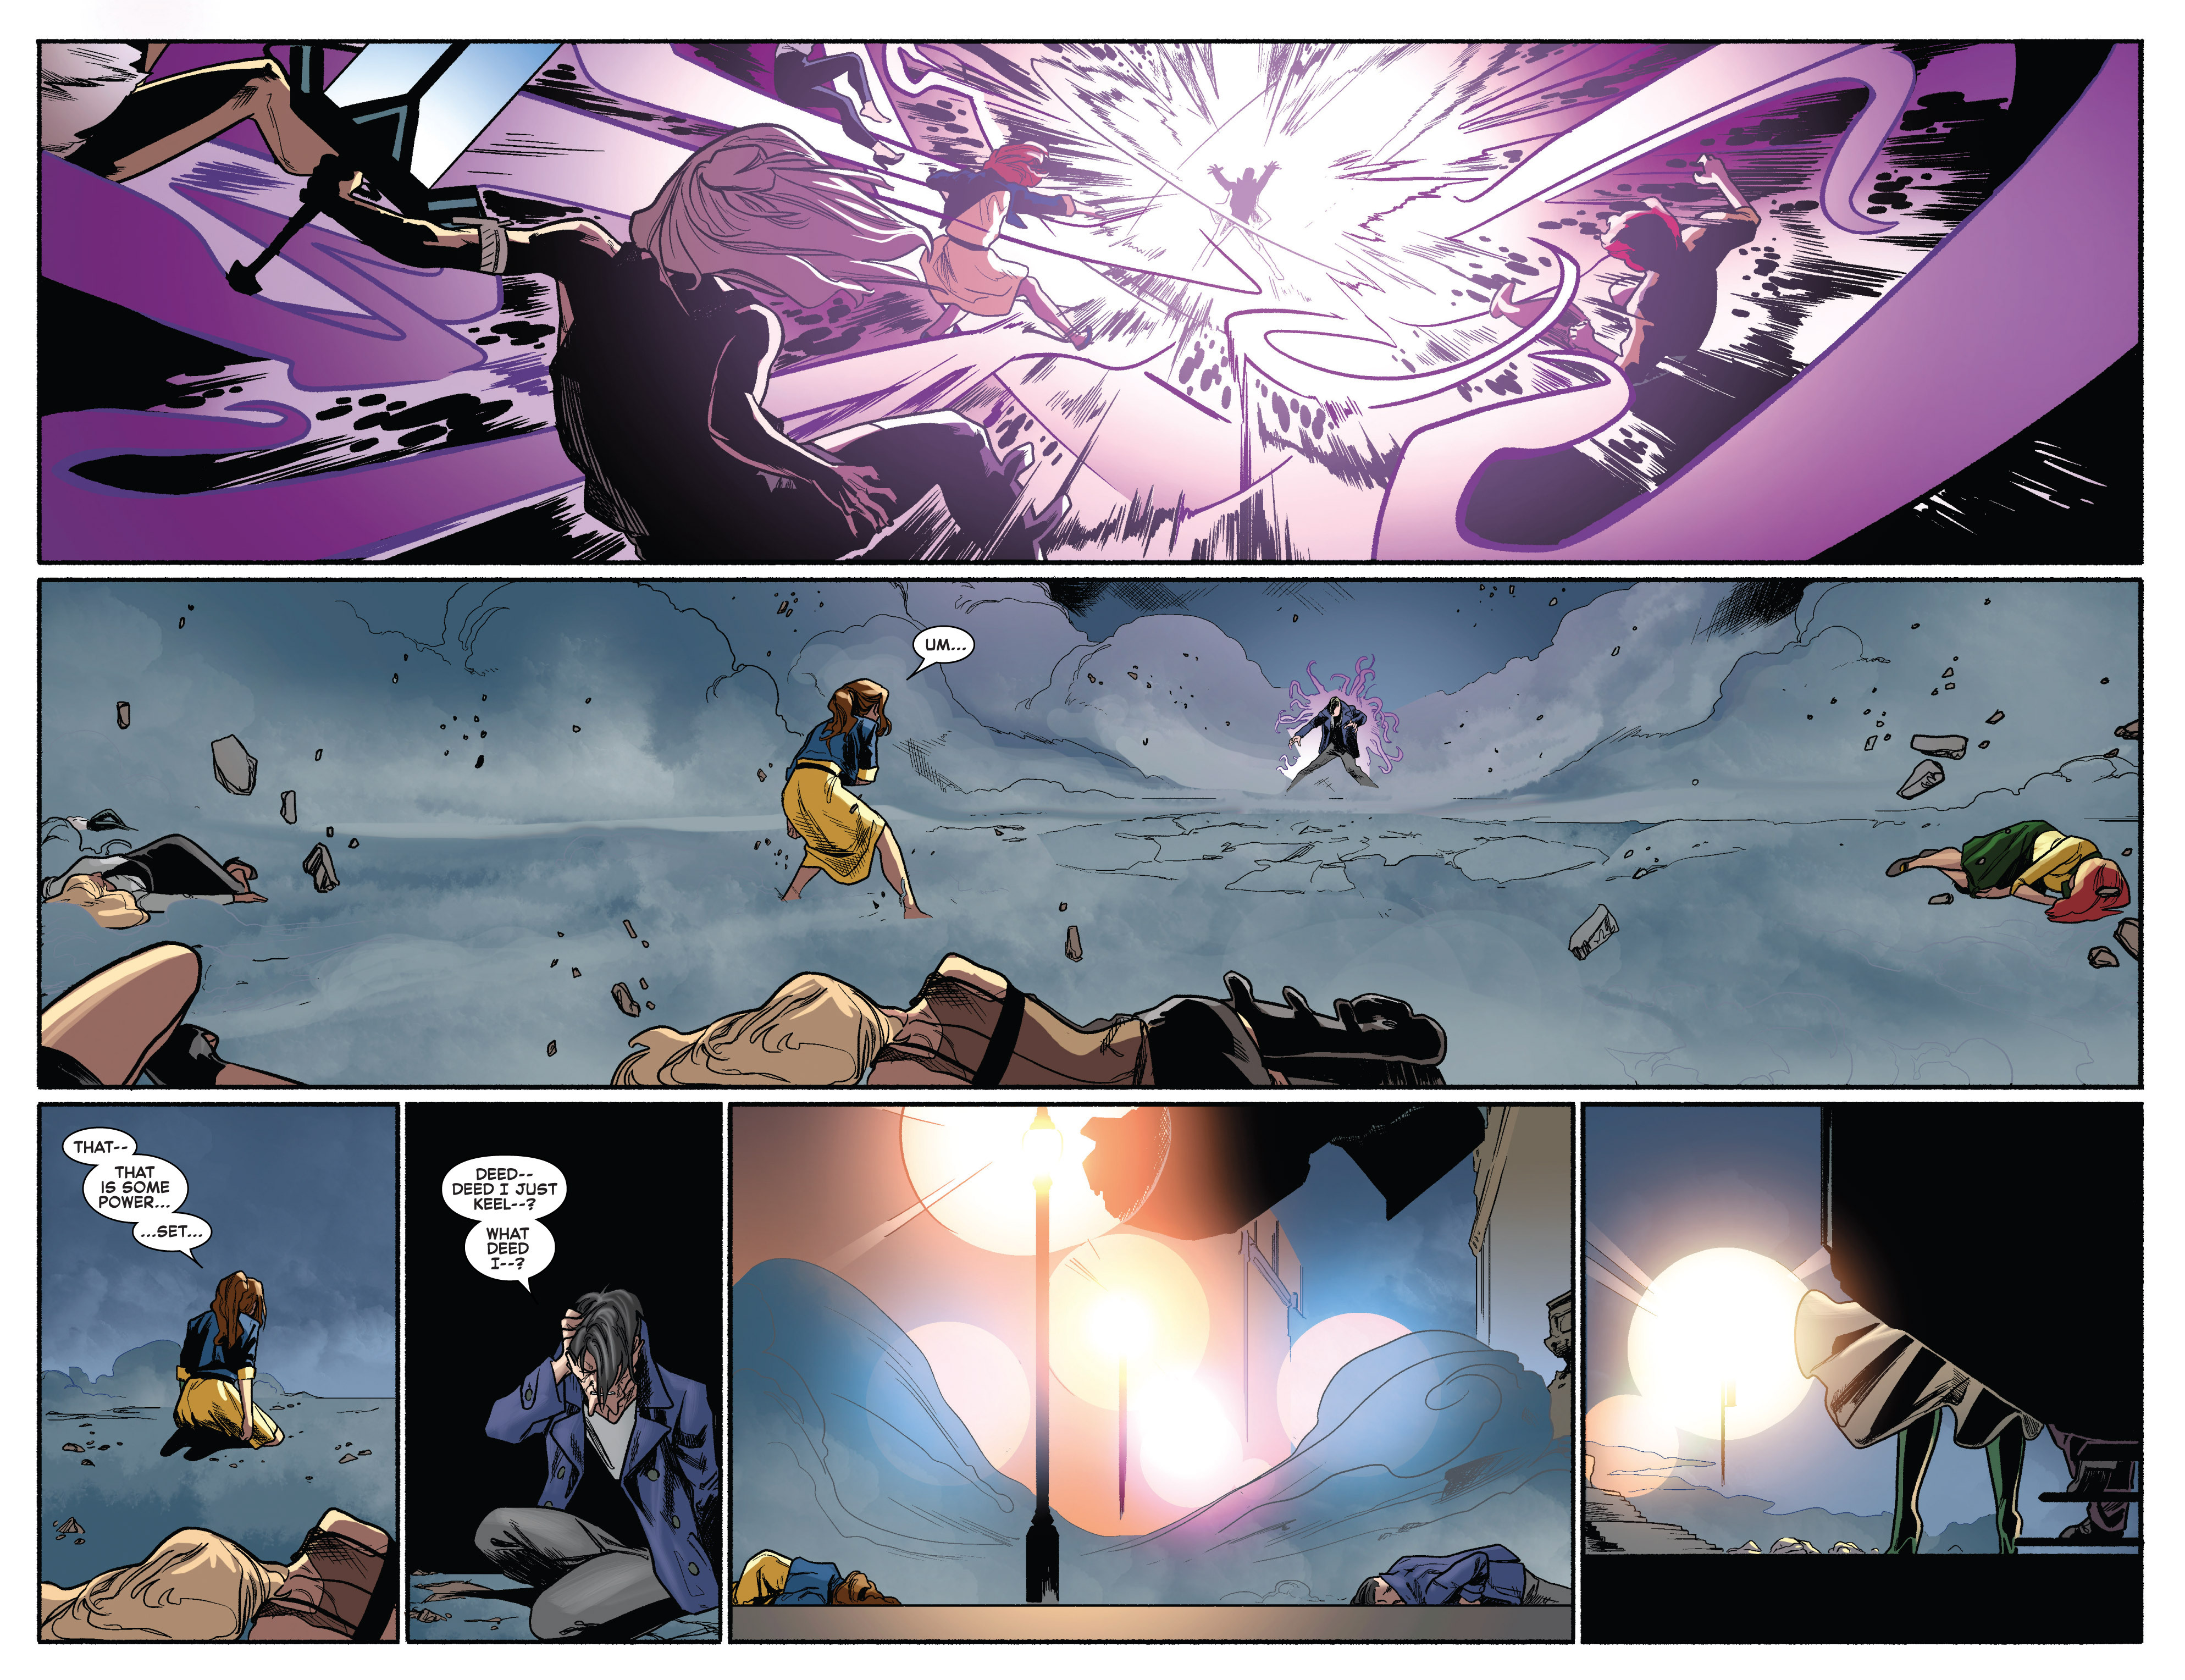 Read online Uncanny X-Men (2013) comic -  Issue # _TPB 3 - The Good, The Bad, The Inhuman - 39